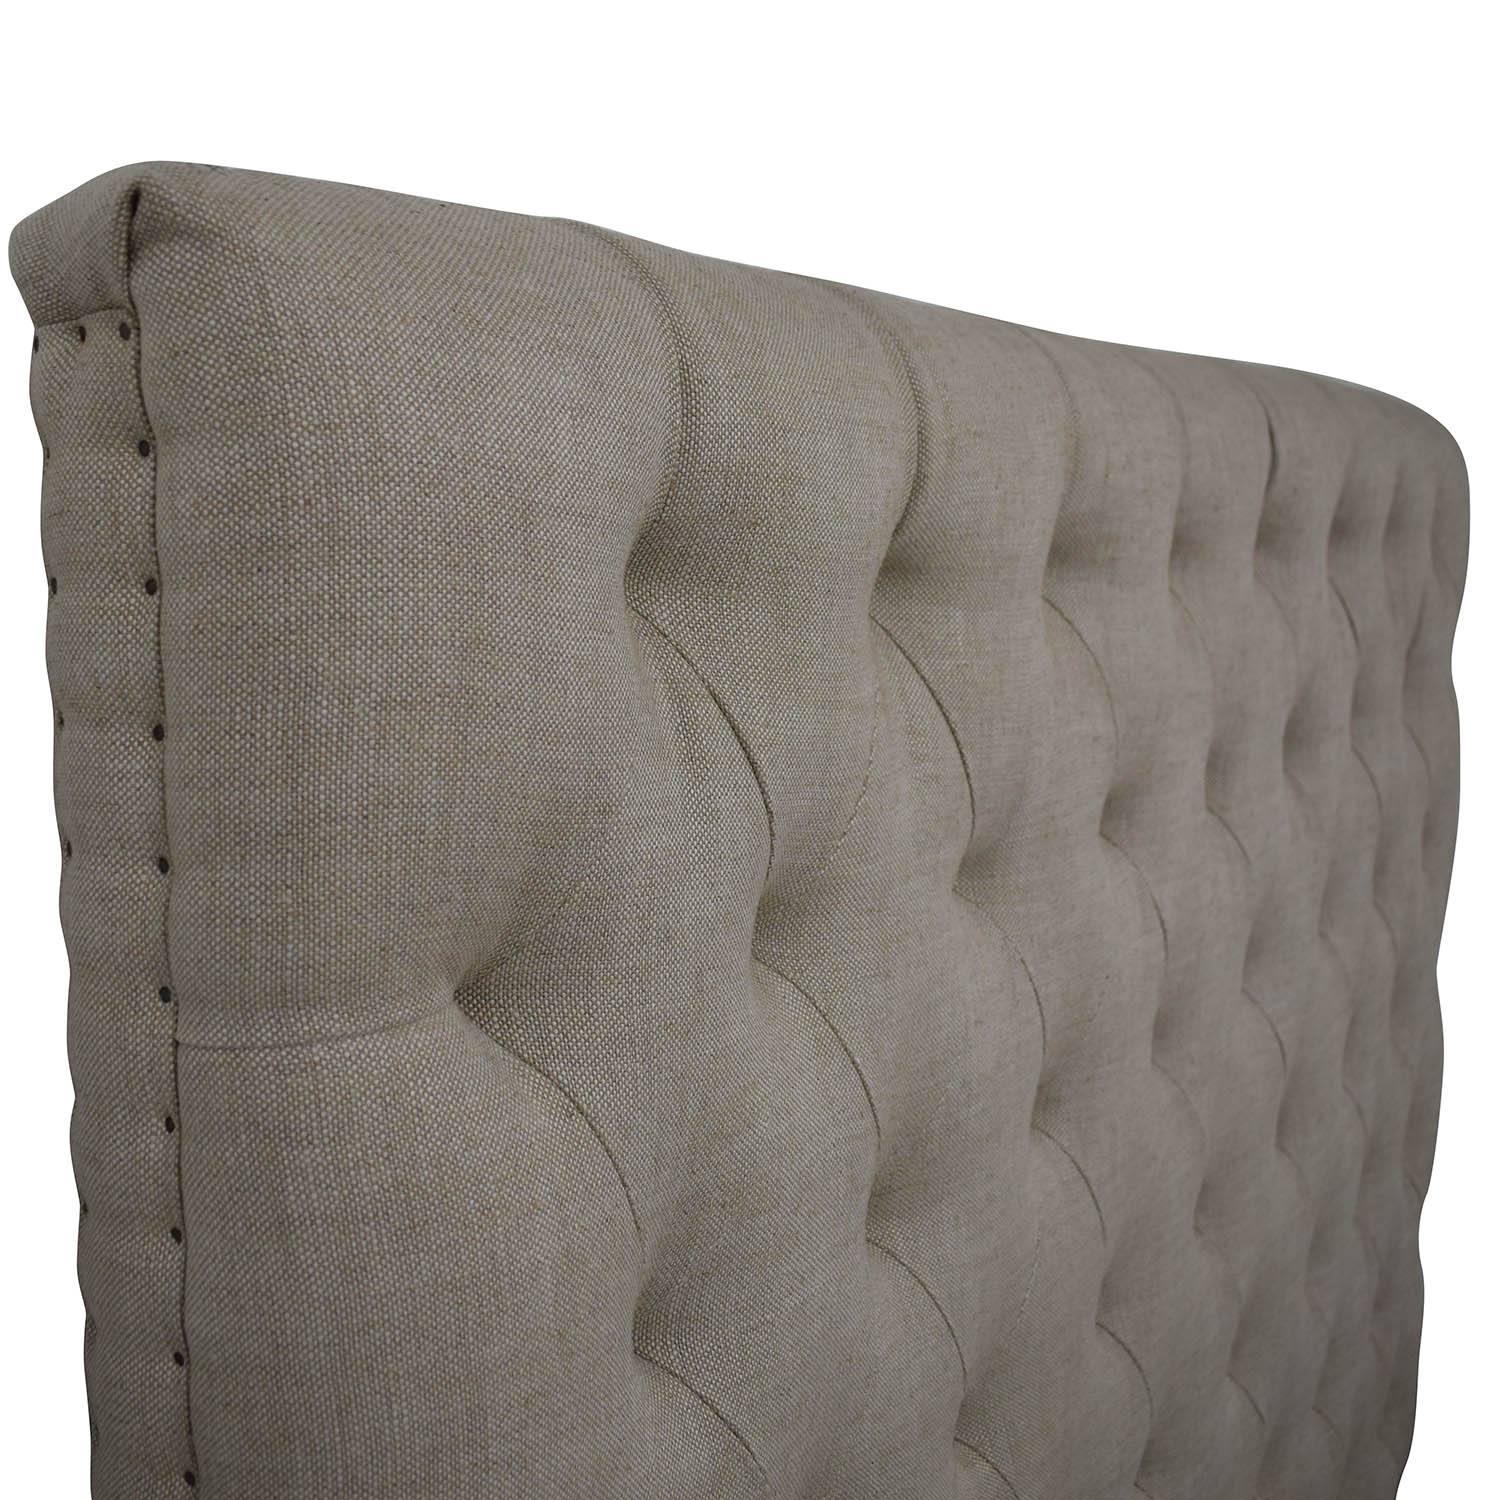 Restoration Hardware Restoration Hardware Chesterfield Fabric Panel Headboard dimensions